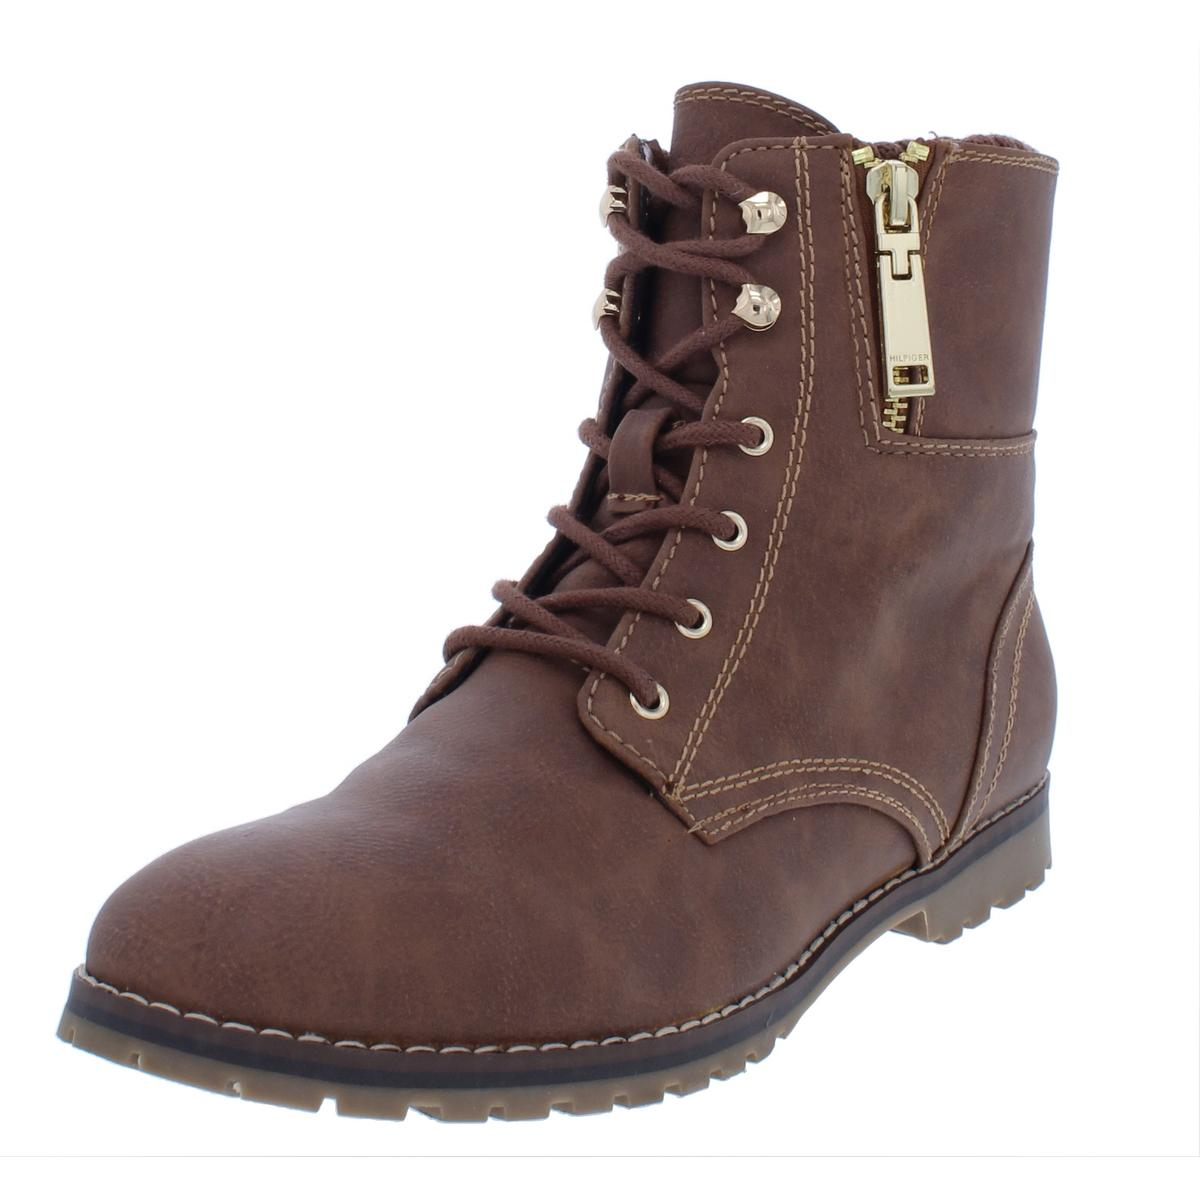 6aeacf281c47 Image is loading Tommy-Hilfiger-Womens-Minny2-Brown-Combat-Boots-Shoes-